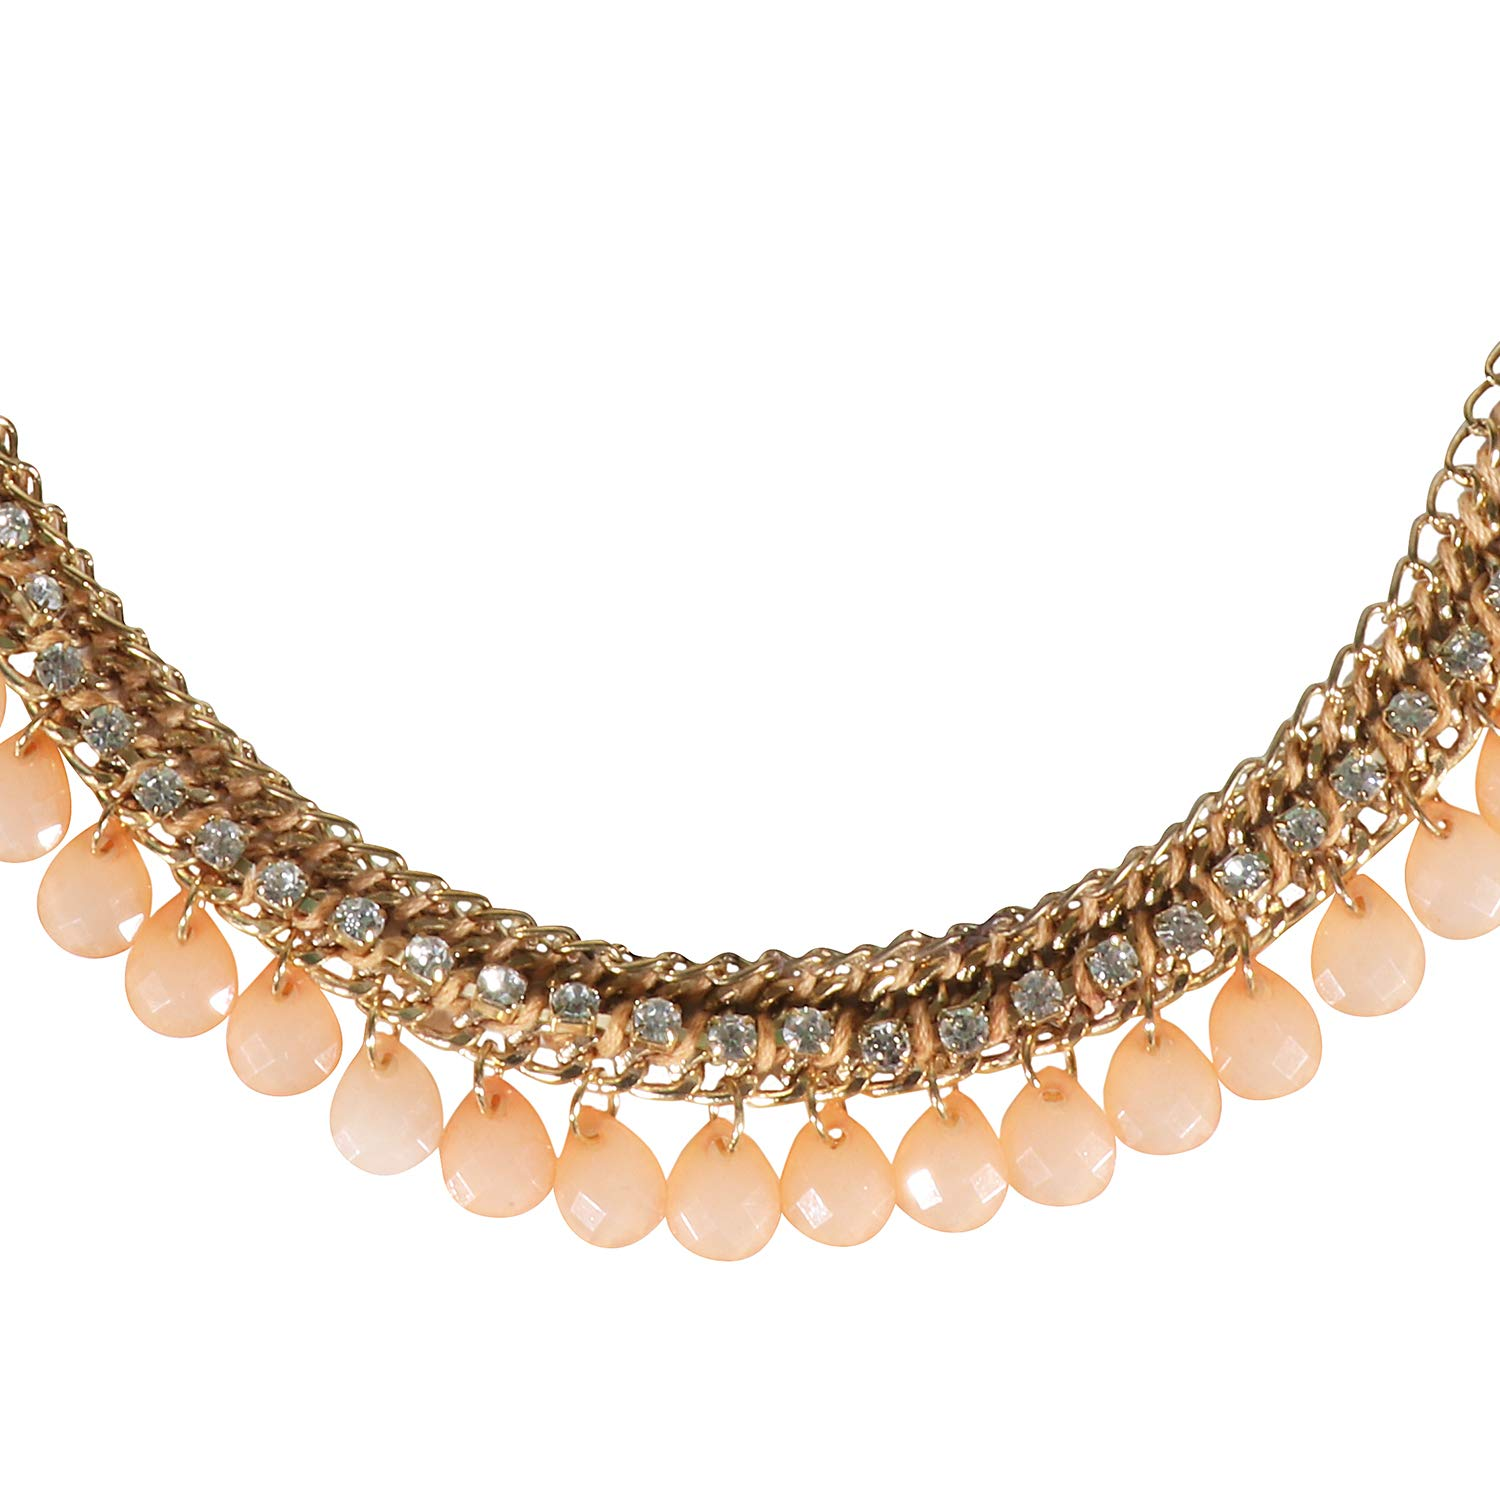 ASHIS Collection Rhinestone Peach Beautiful Trendy Necklace for Women.